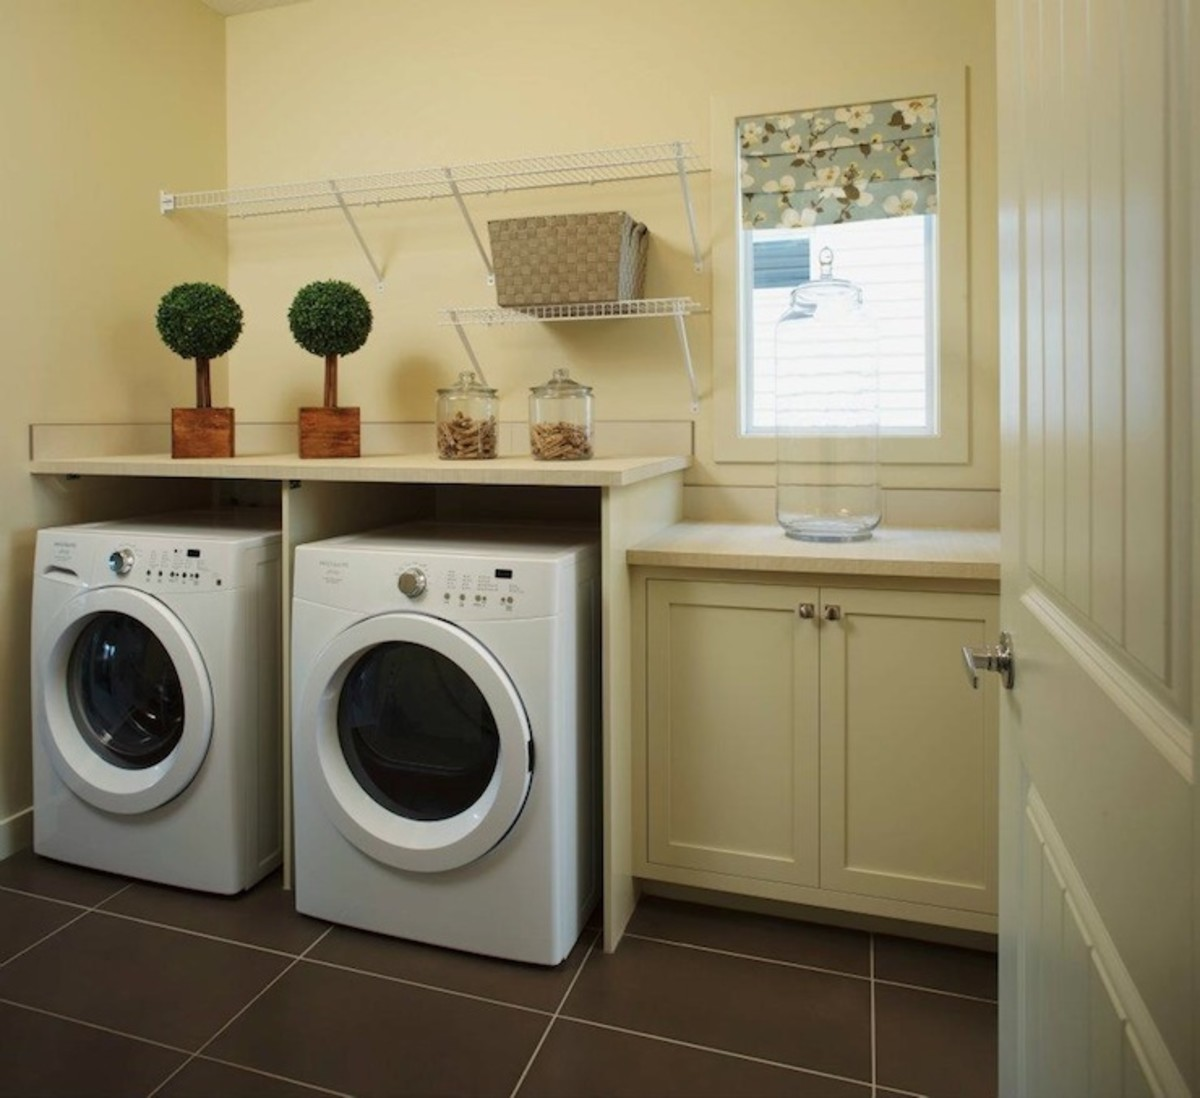 Lovely pale yellow laundry room with cream cabinetry with white laminate countertops and the white front-load washer and dryer.